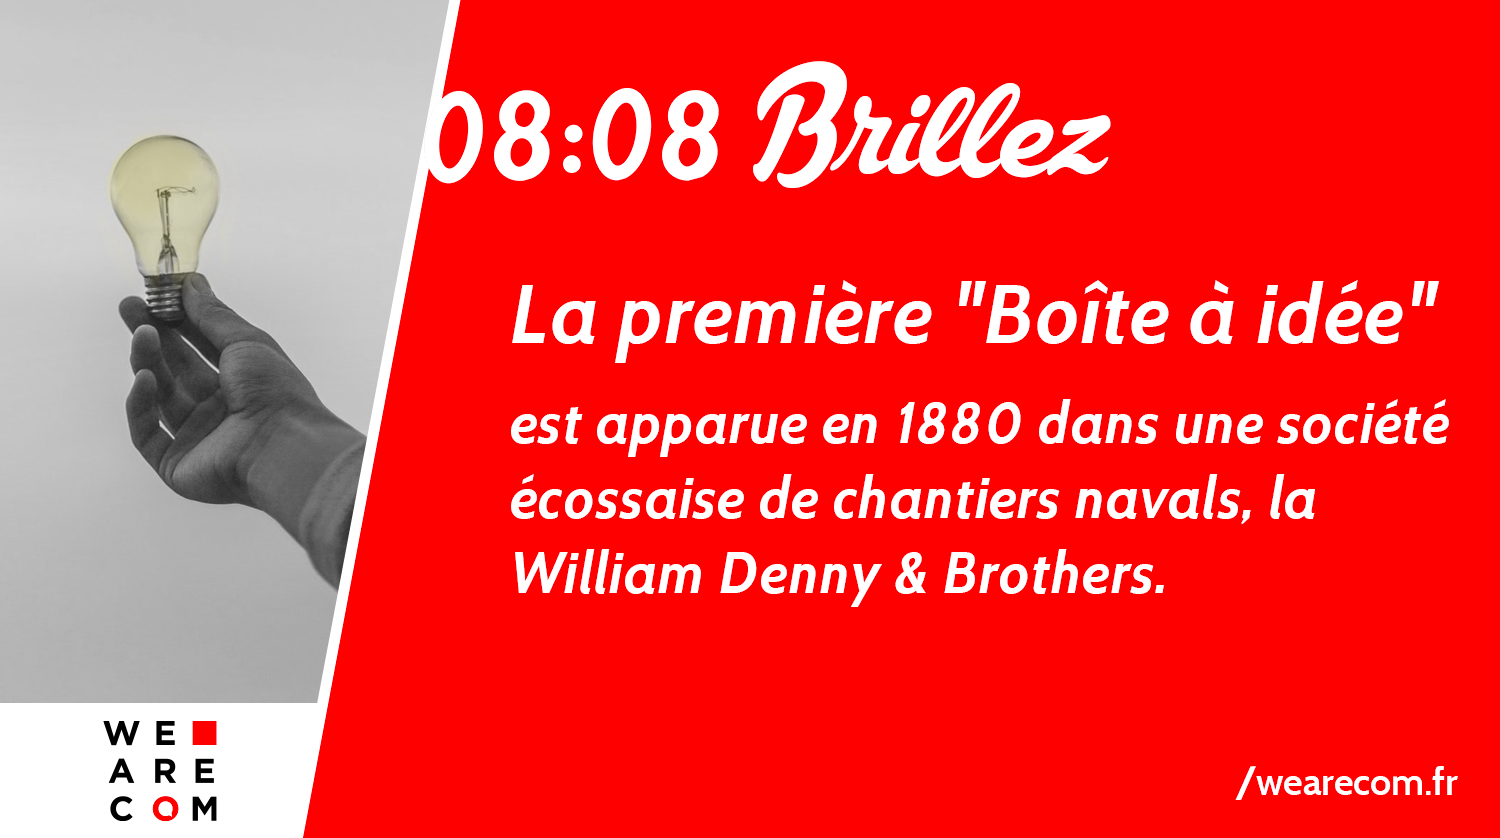 Boite-a-idees-communicator-we-are-com